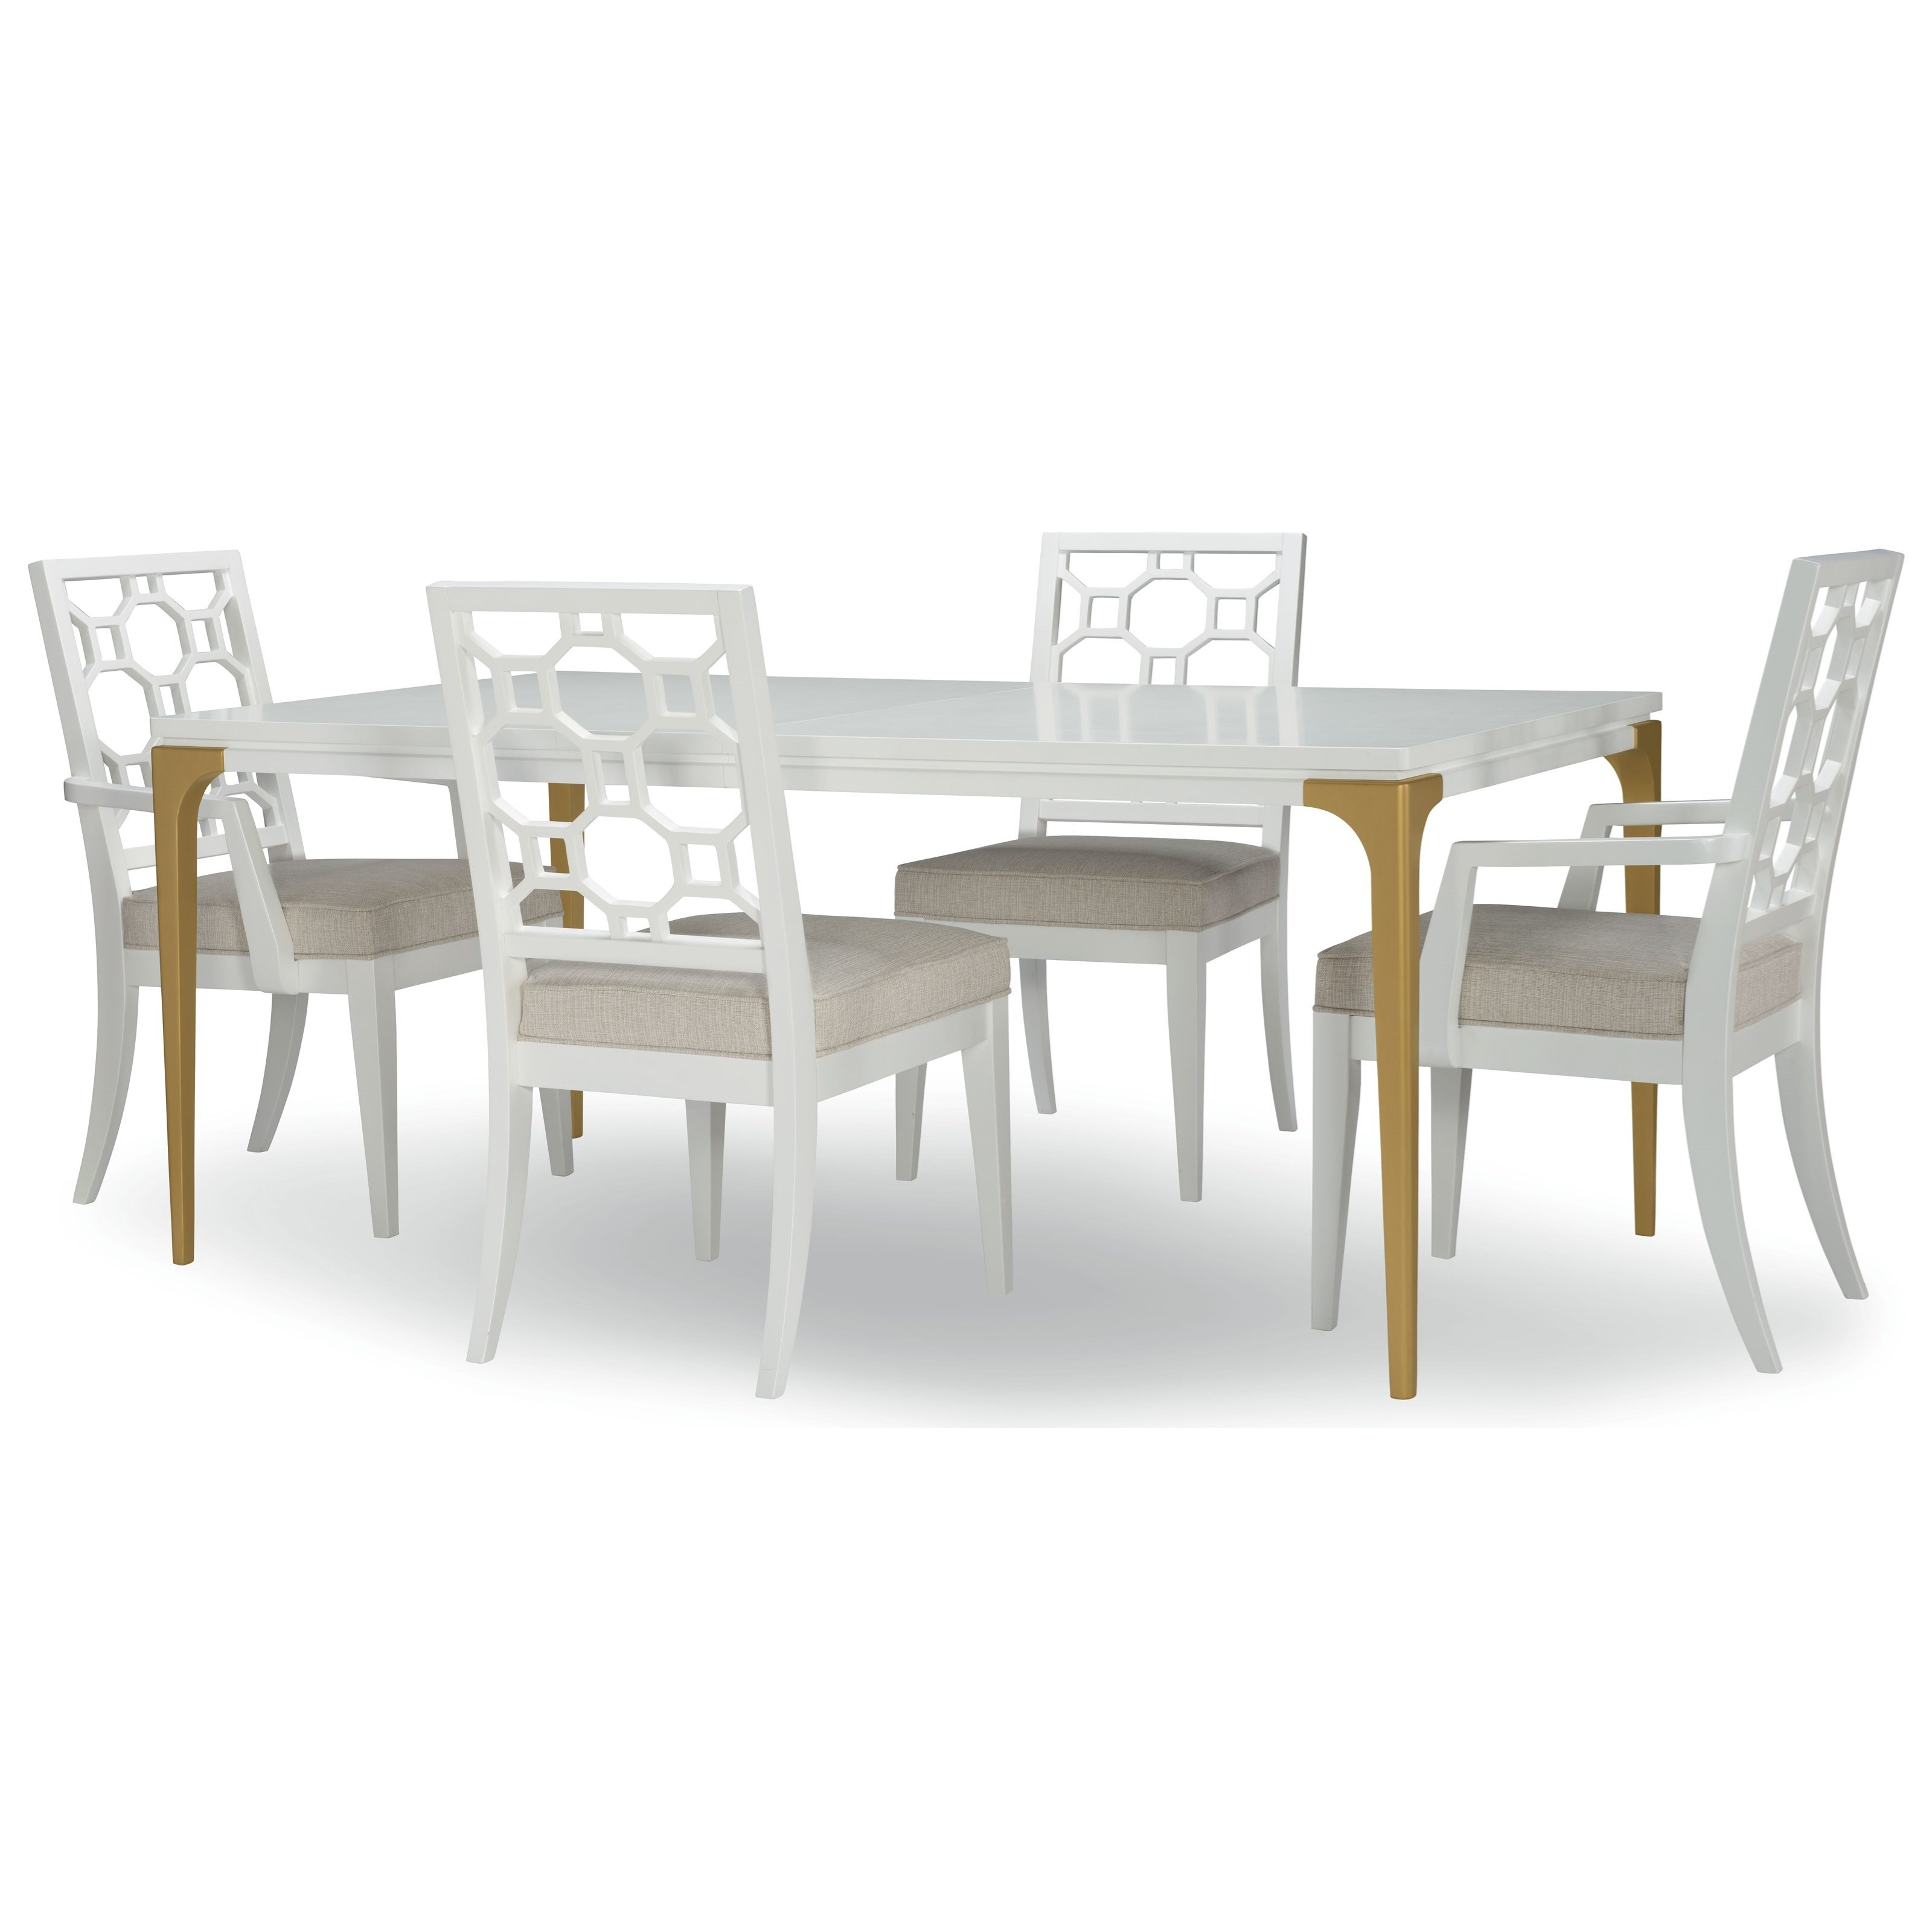 Chelsea  5-Piece Table and Chair Set by Rachael Ray Home by Legacy Classic at Pilgrim Furniture City